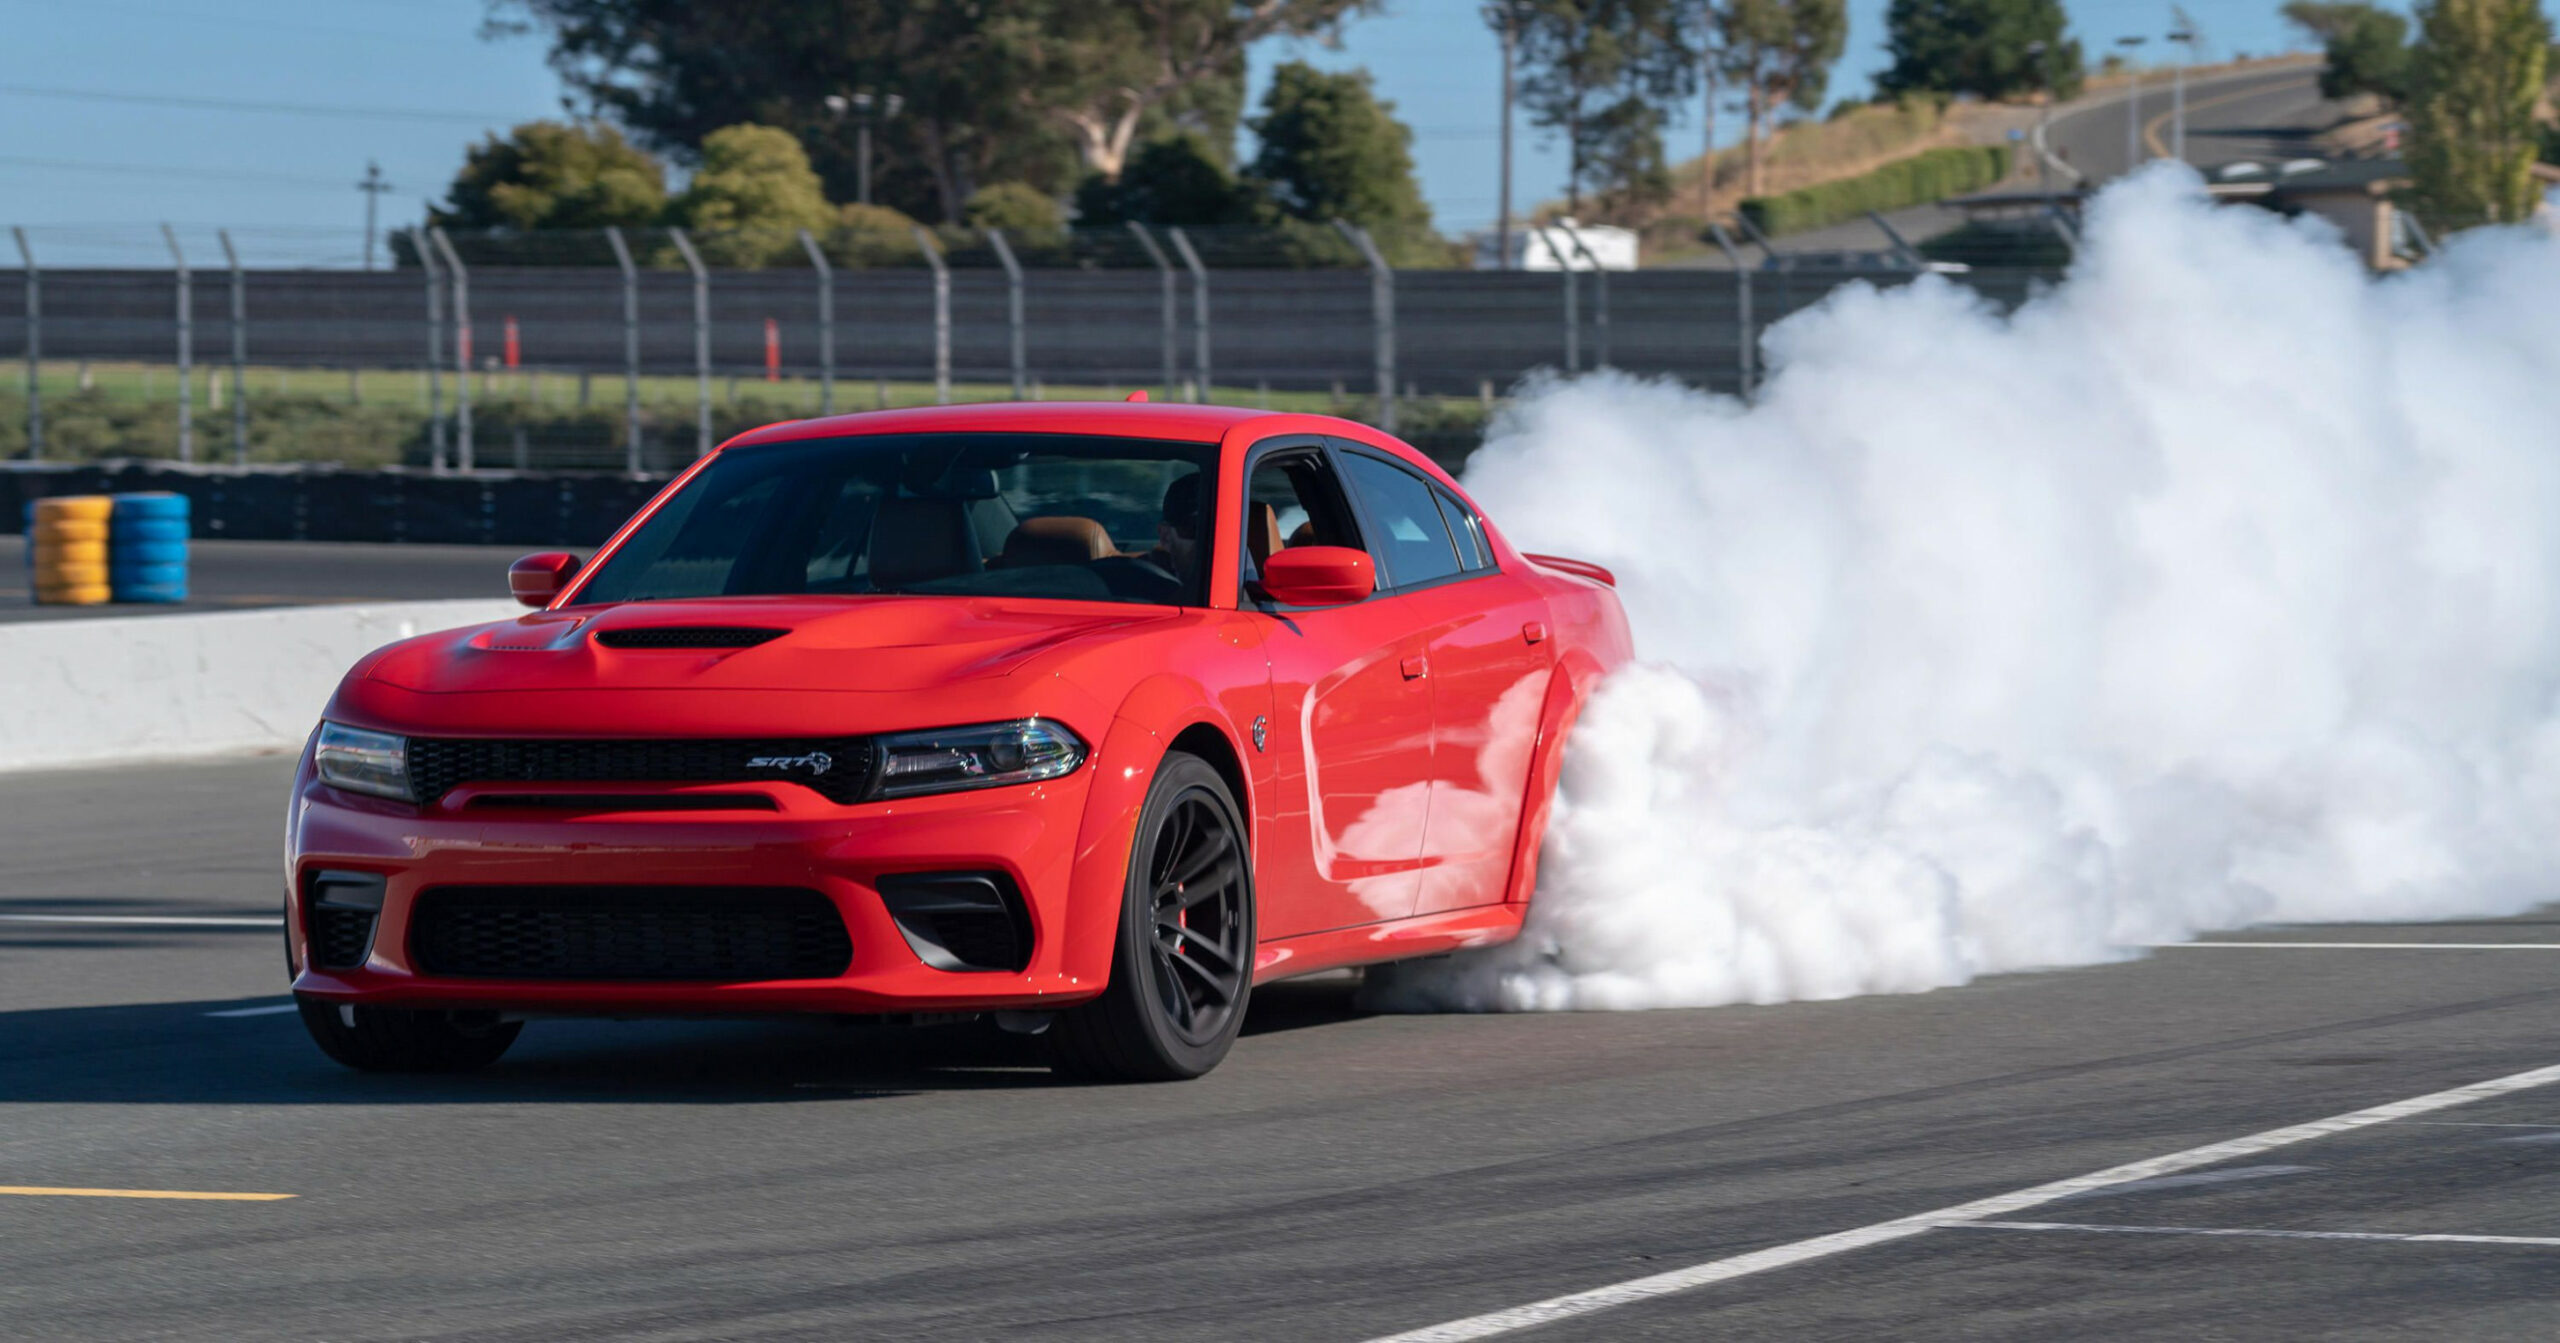 7 Dodge Charger Widebody first drive review: Horsepower that ..